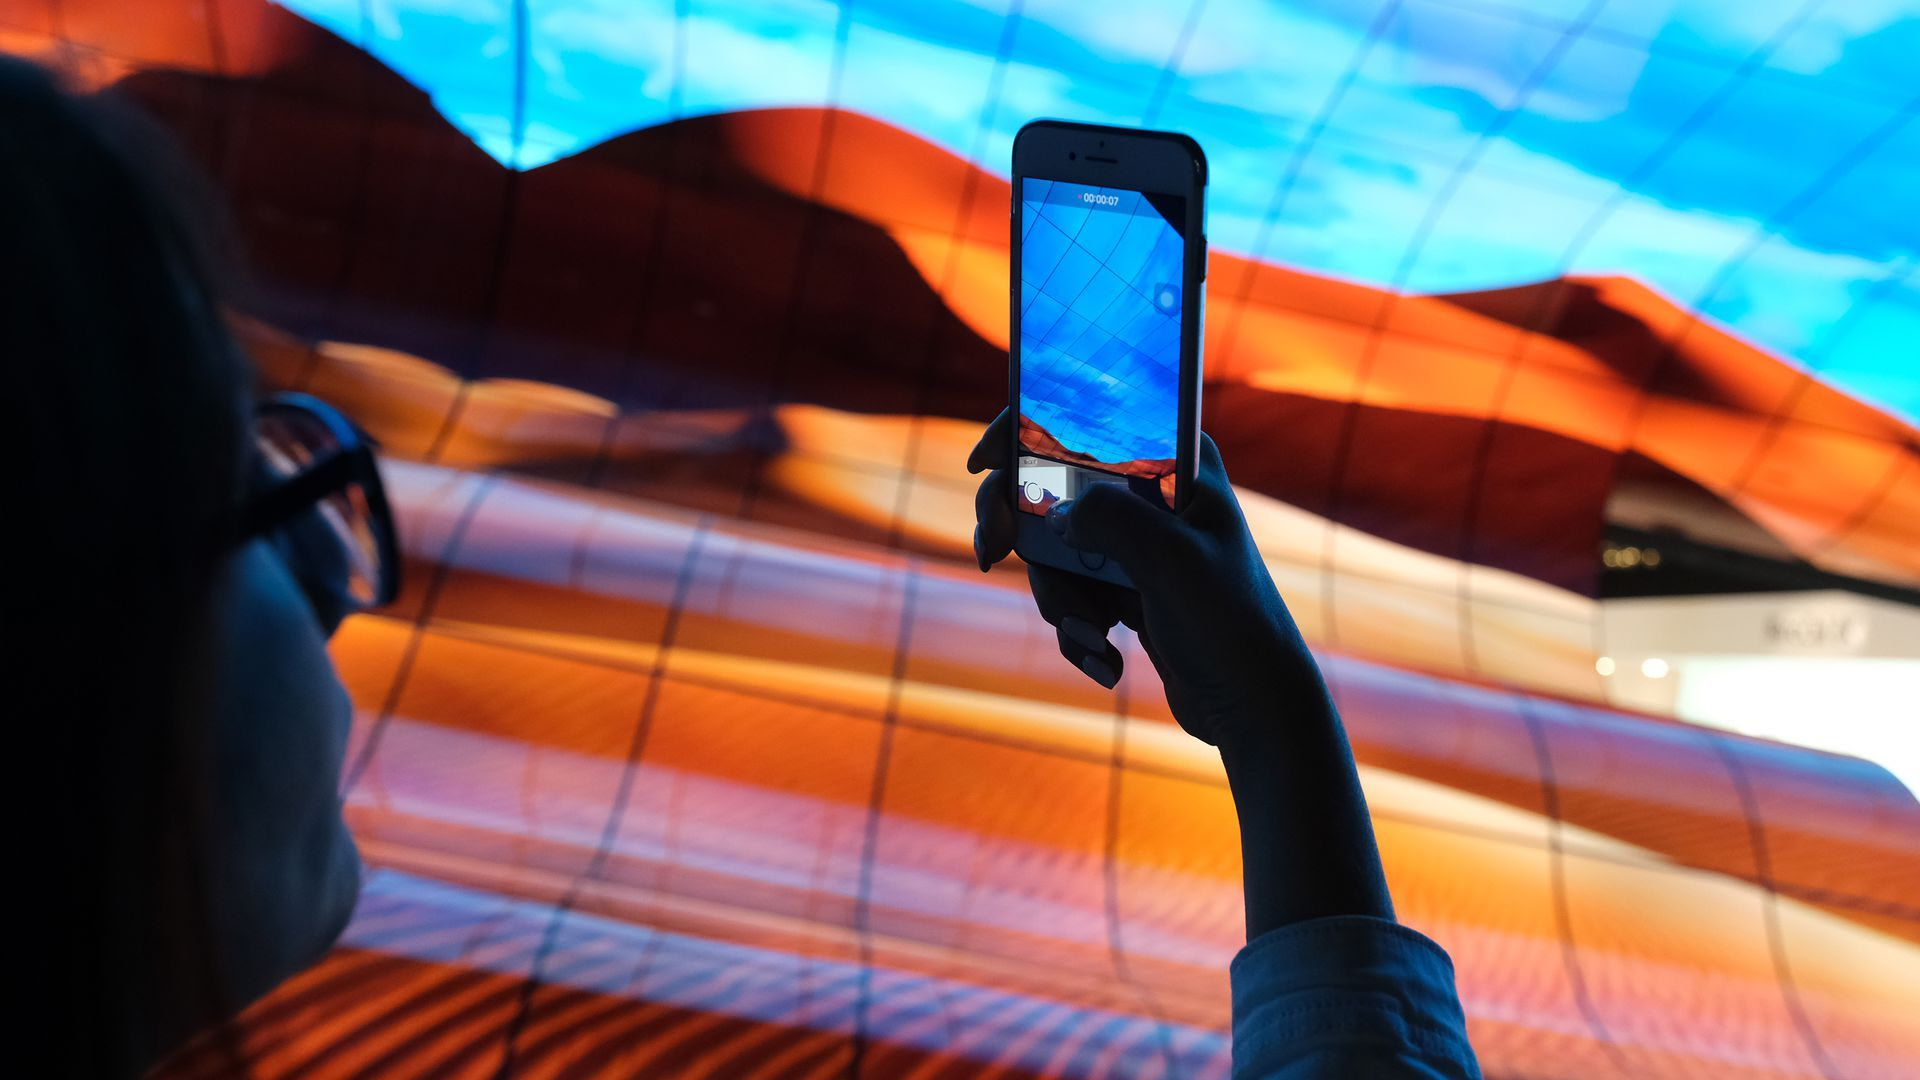 A visitor photographs a display of curved OLED TVs at the LG stand at the 2019 IFA home electronics and appliances trade fair. Photo: Sean Gallup/Getty Images